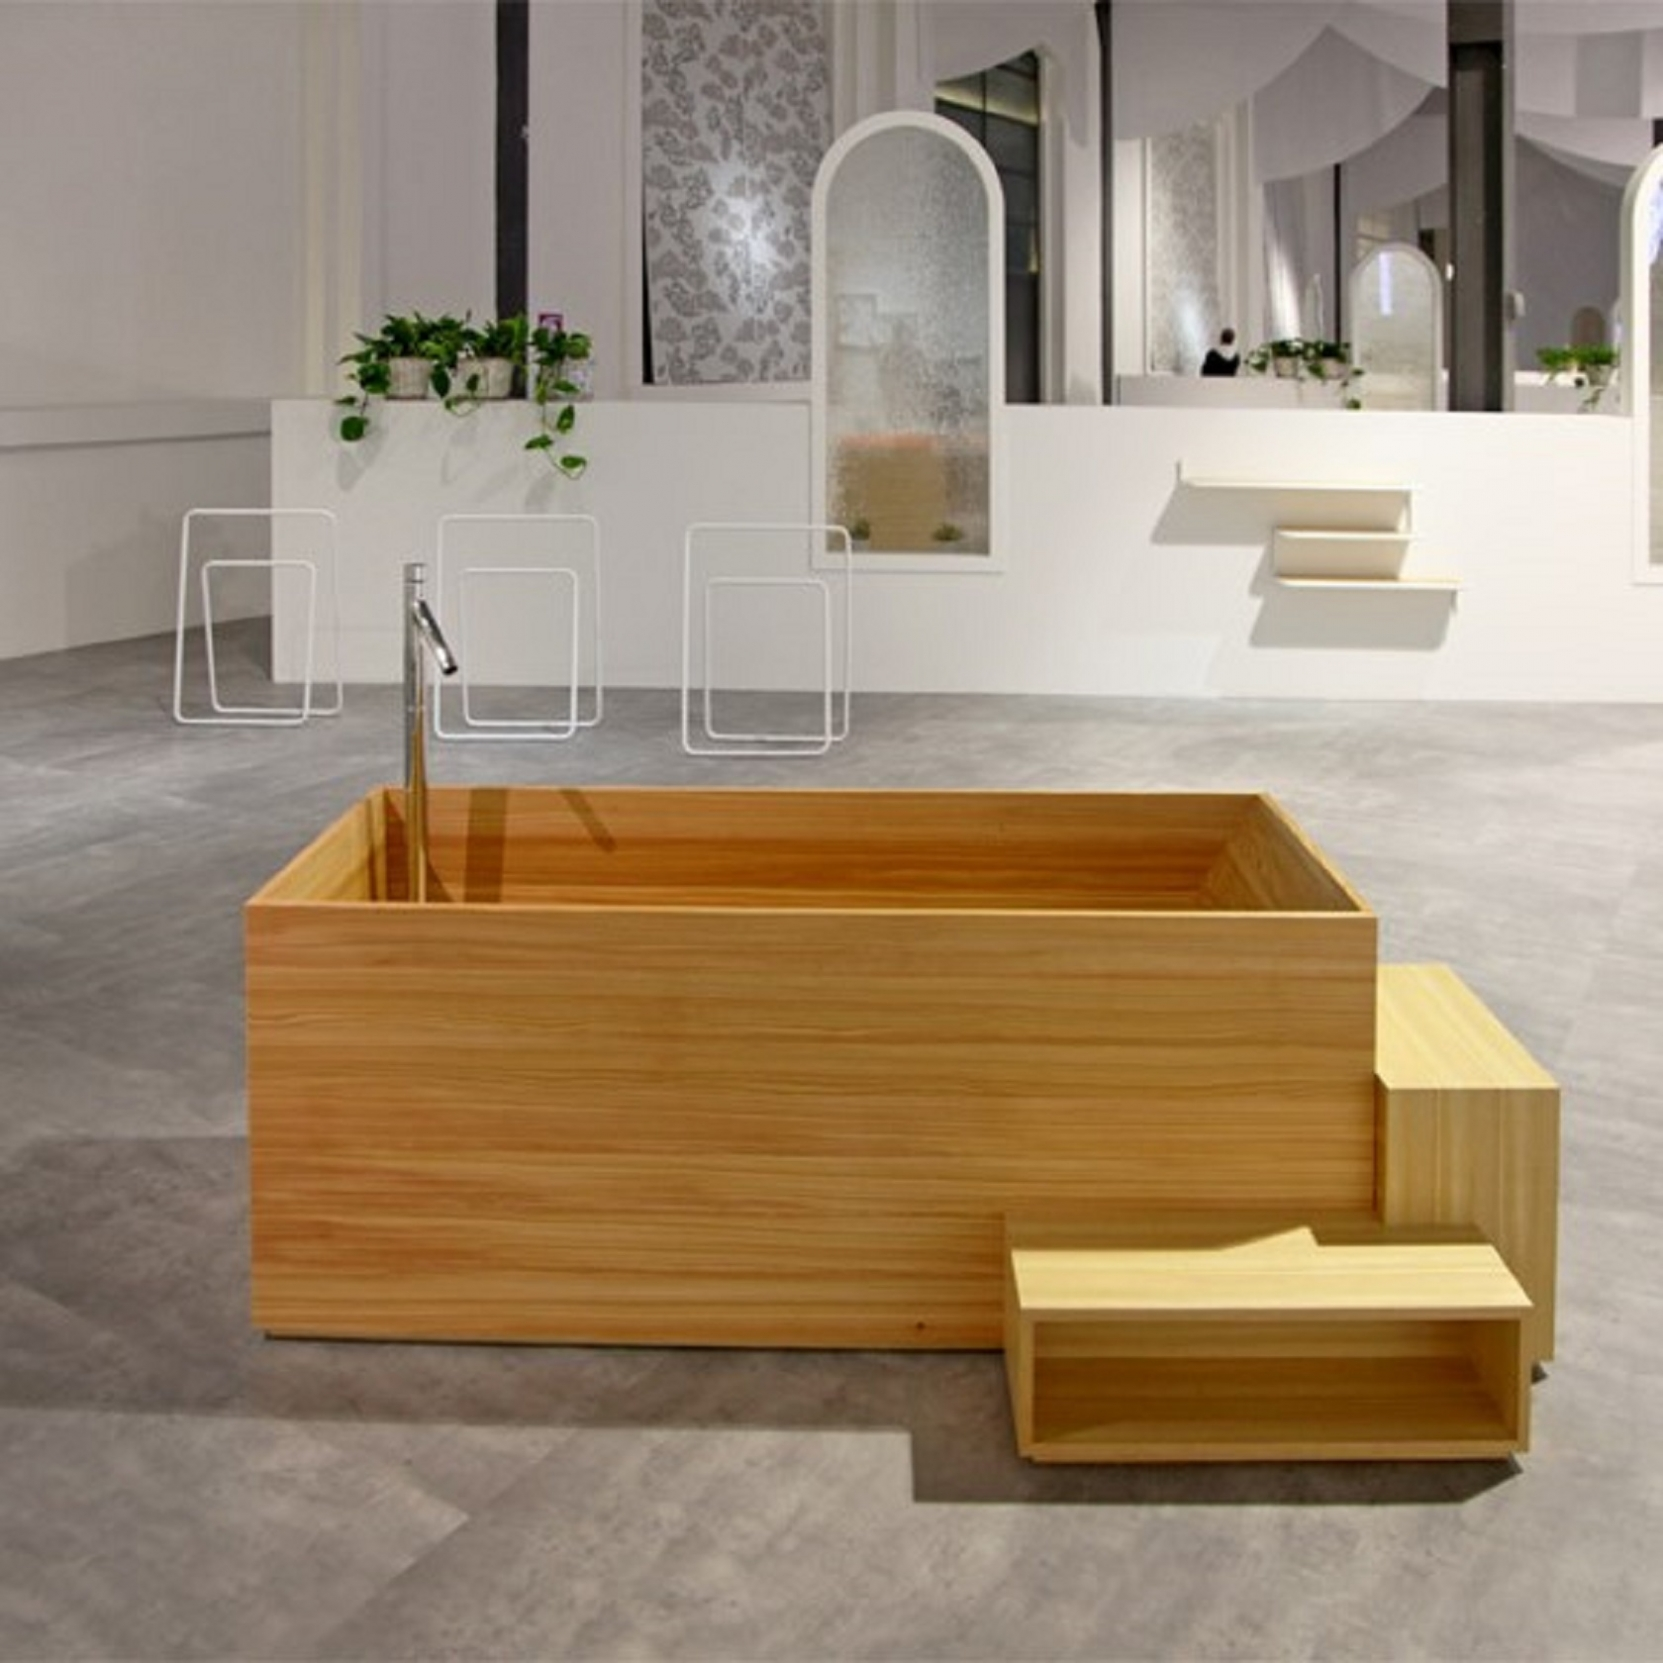 BISAZZA OFURO BATHTUB - TattaHome